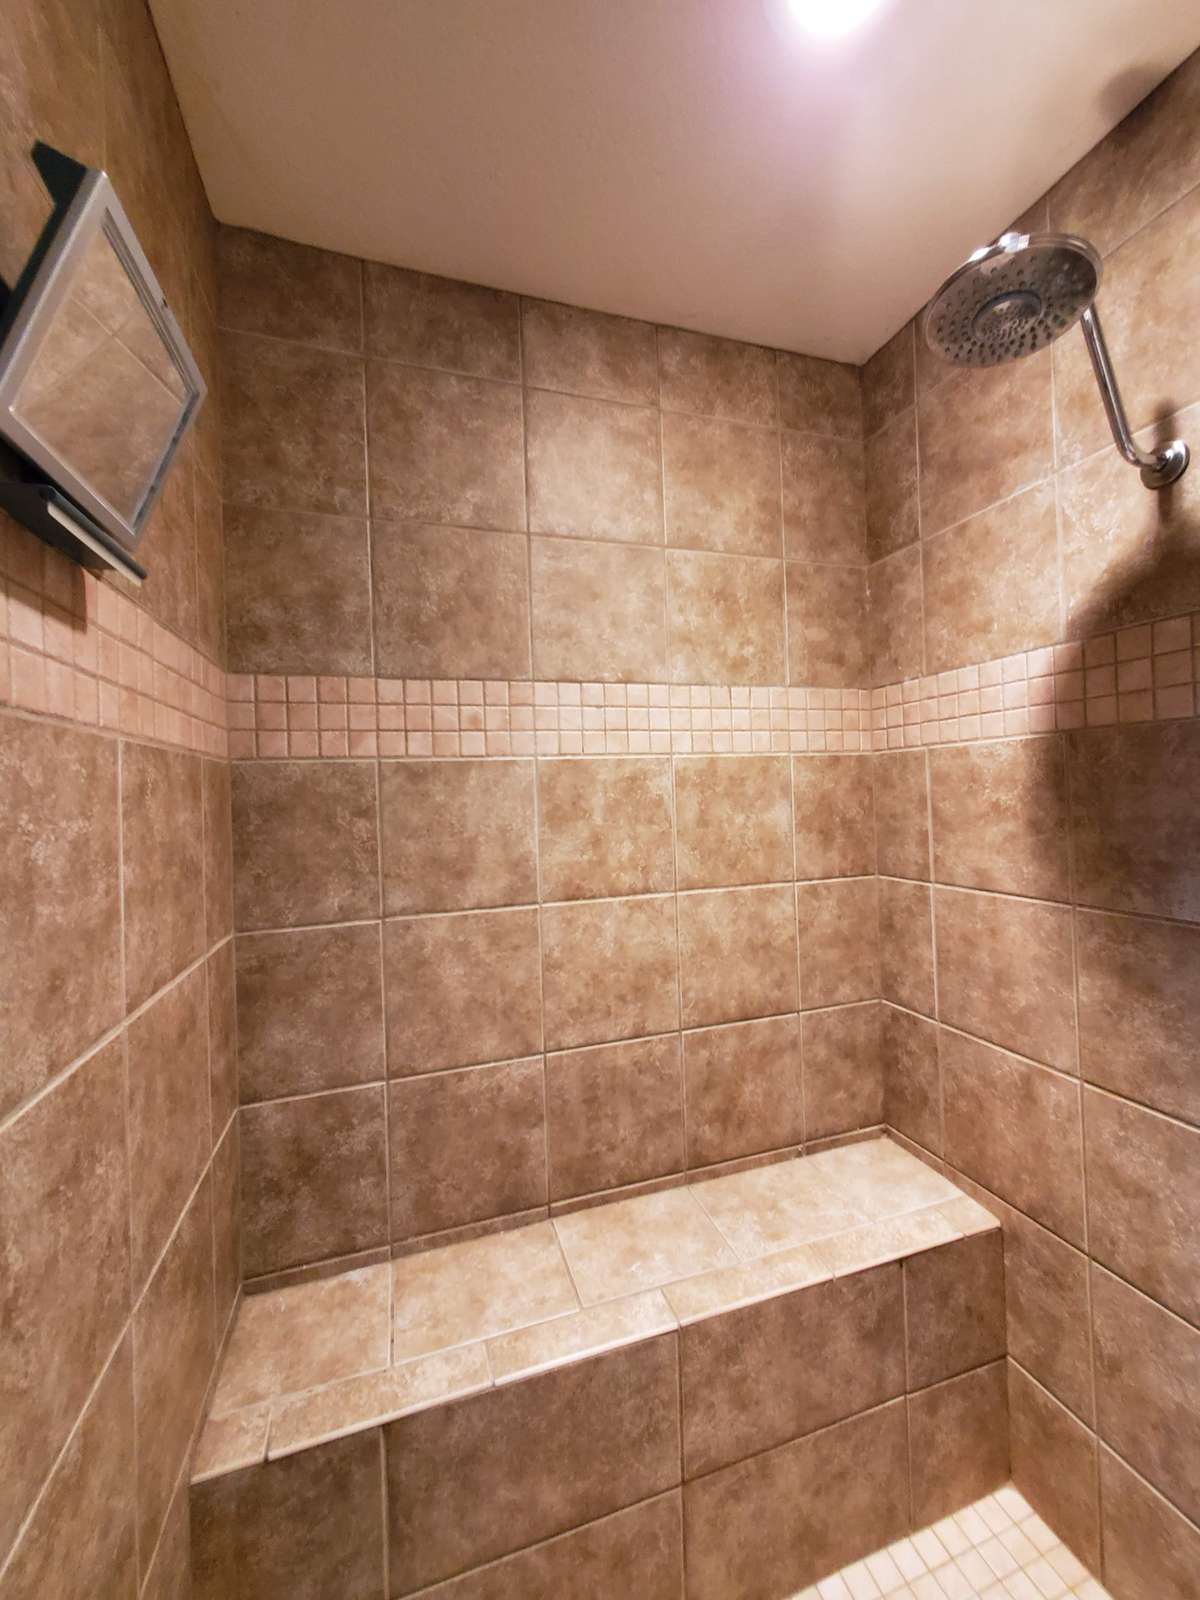 Tiled Walk-In Shower